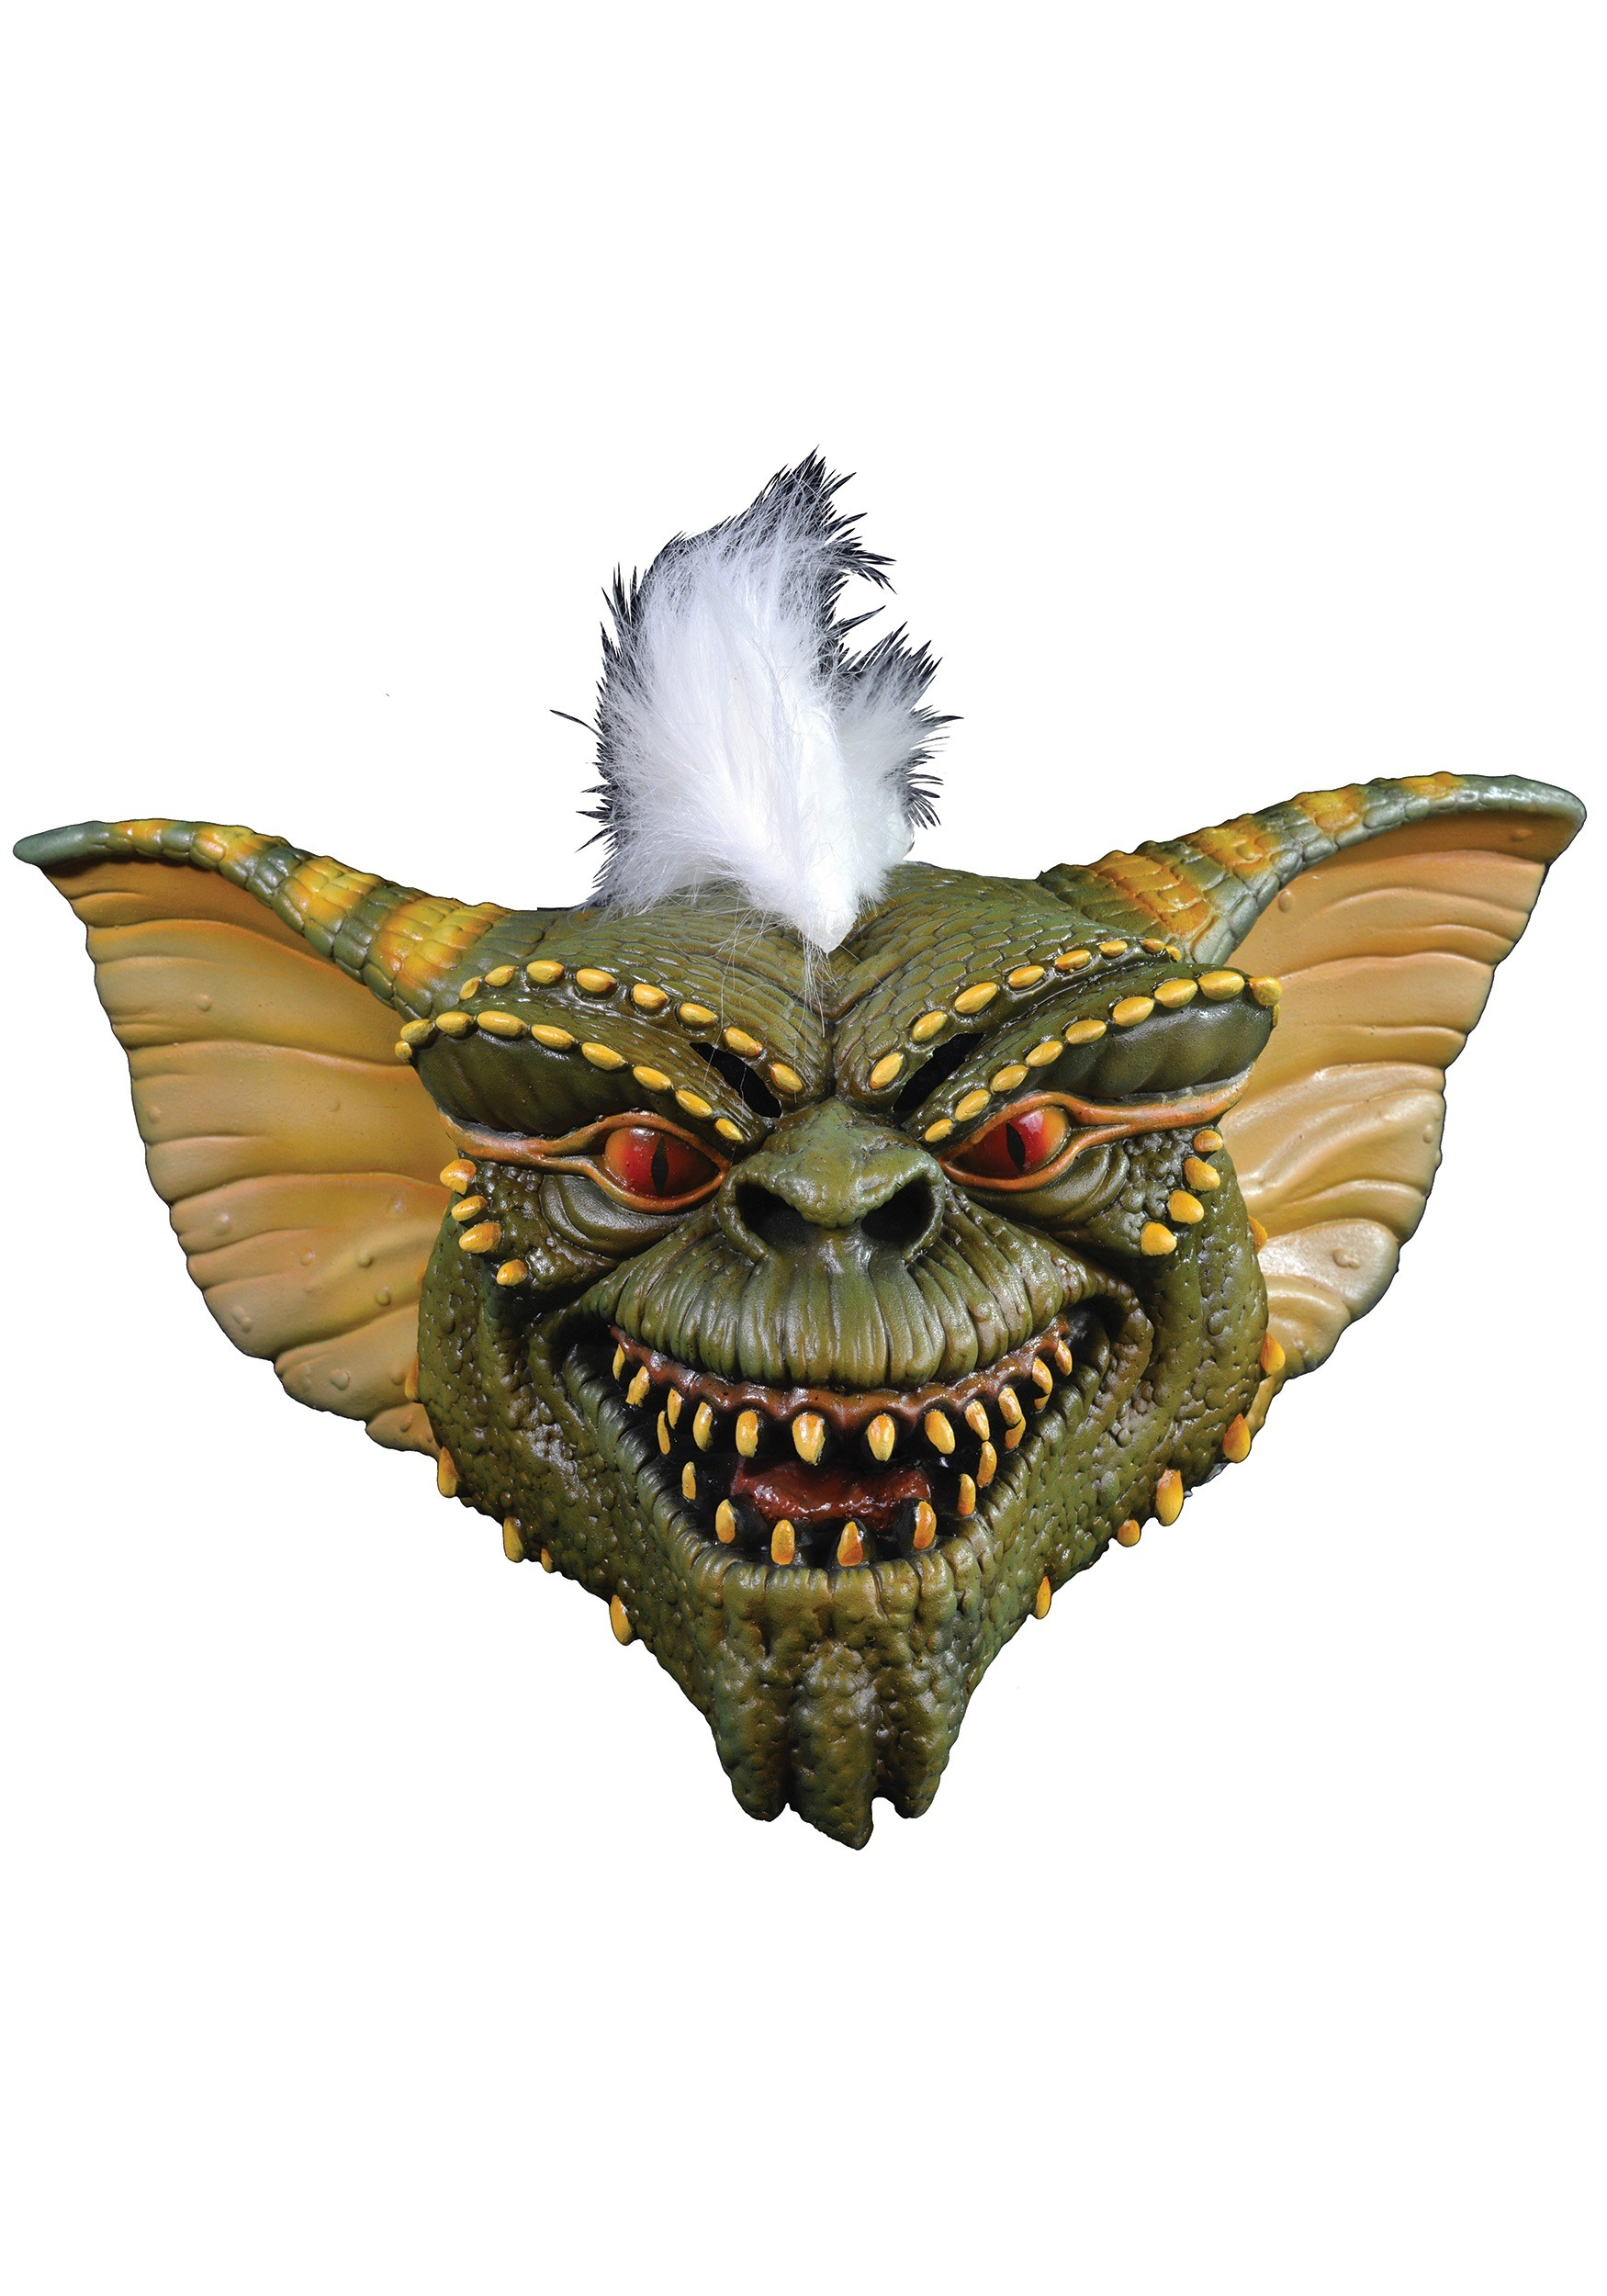 Adult Stripe Mask from the Gremlins